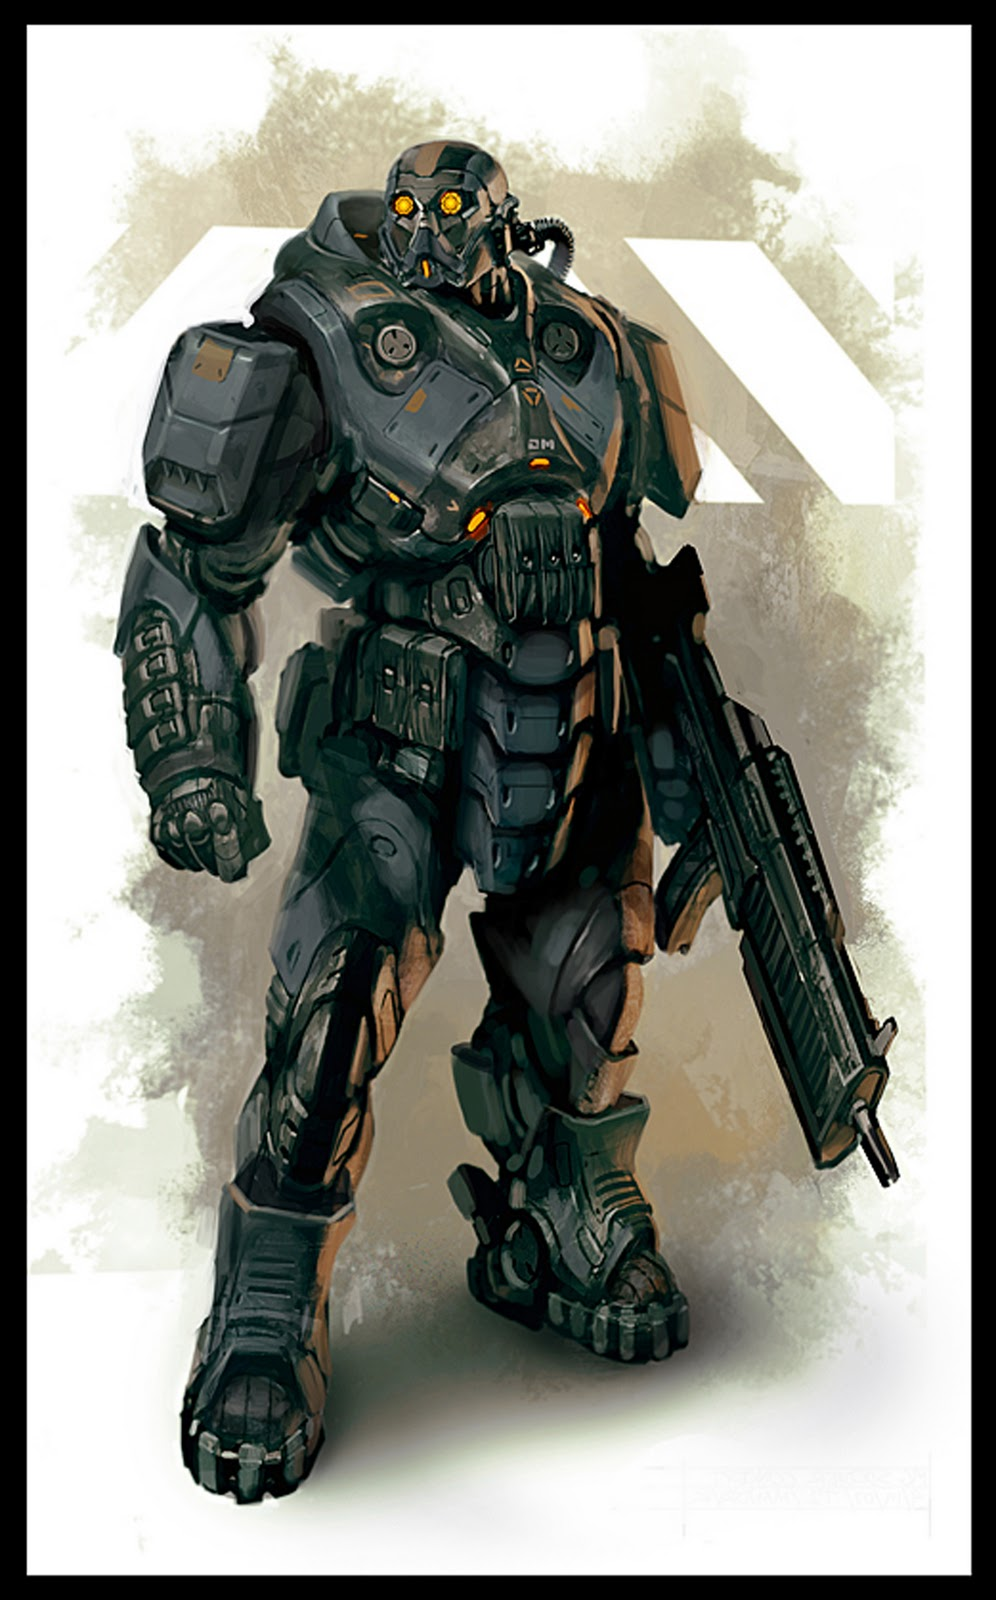 MTF Armor Design  Heavy+soldier+bio+hazard+gears+of+war+unreal+tournament+suit+daryl+mandryk+concept+soldier+armor+mech+mecha+laser+blaster+gun+cannon+warrior+space+sci+fi